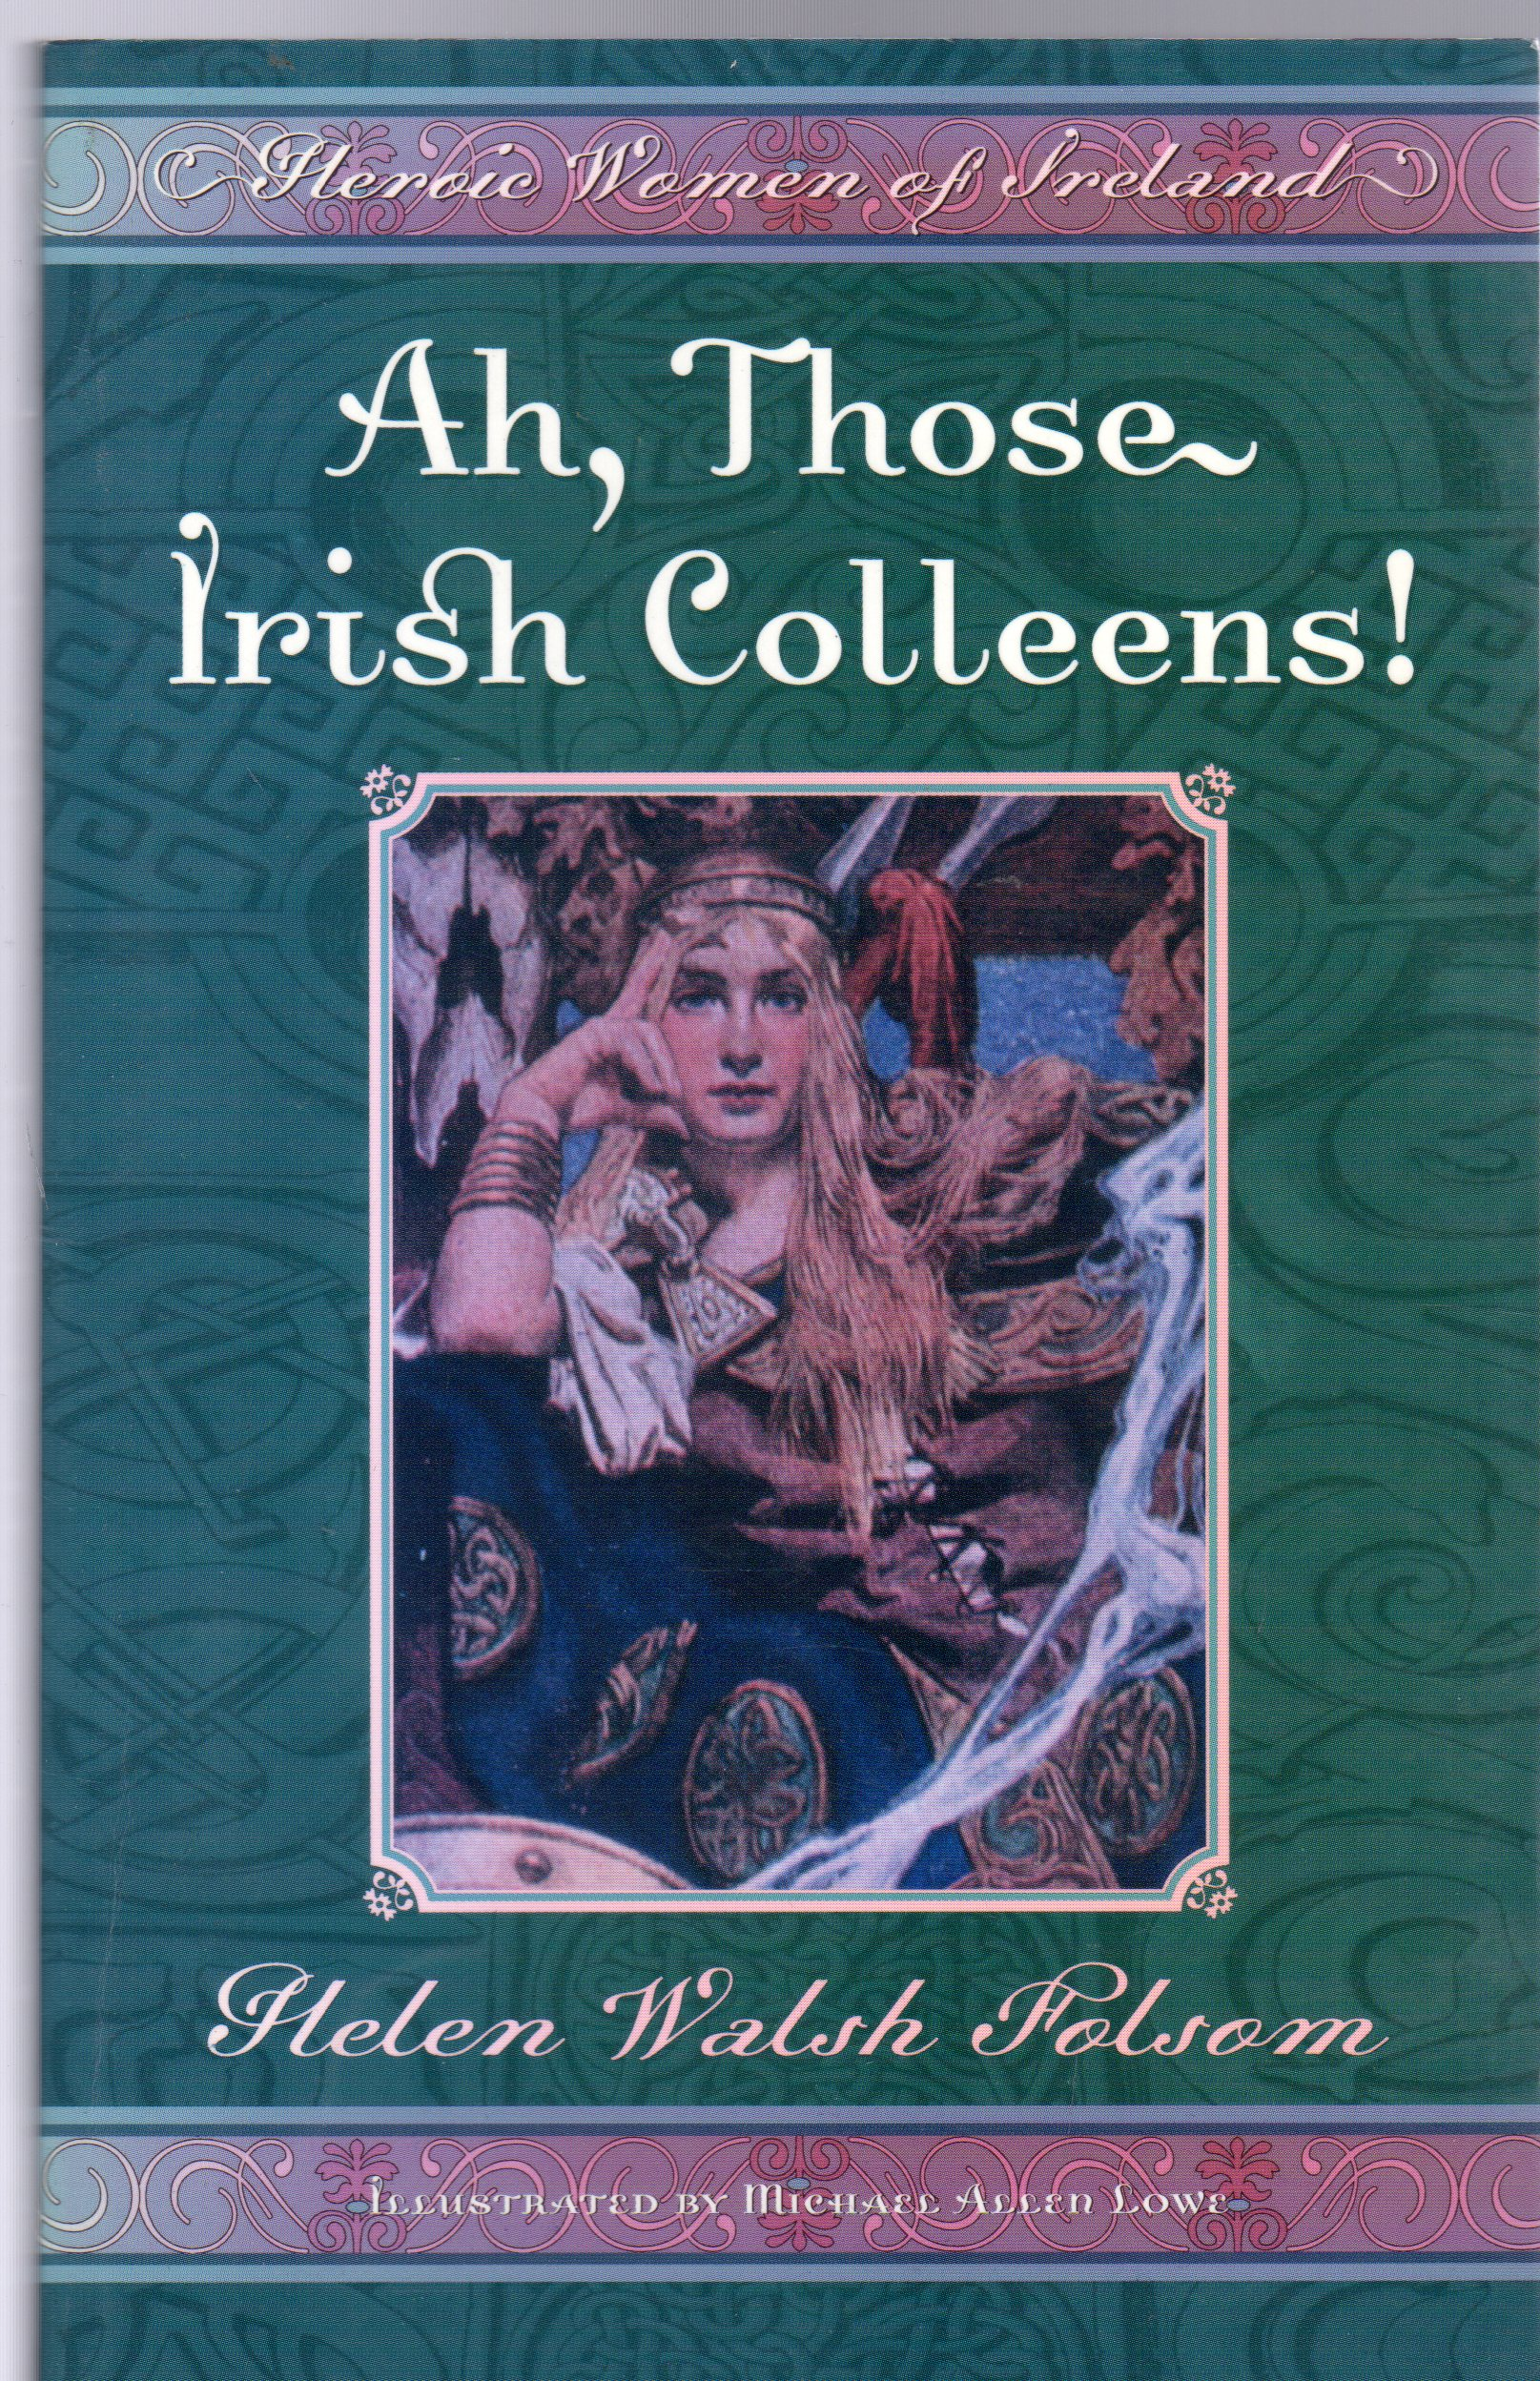 Image for Ah, Those Irish Colleens! : Heroic Women of Ireland